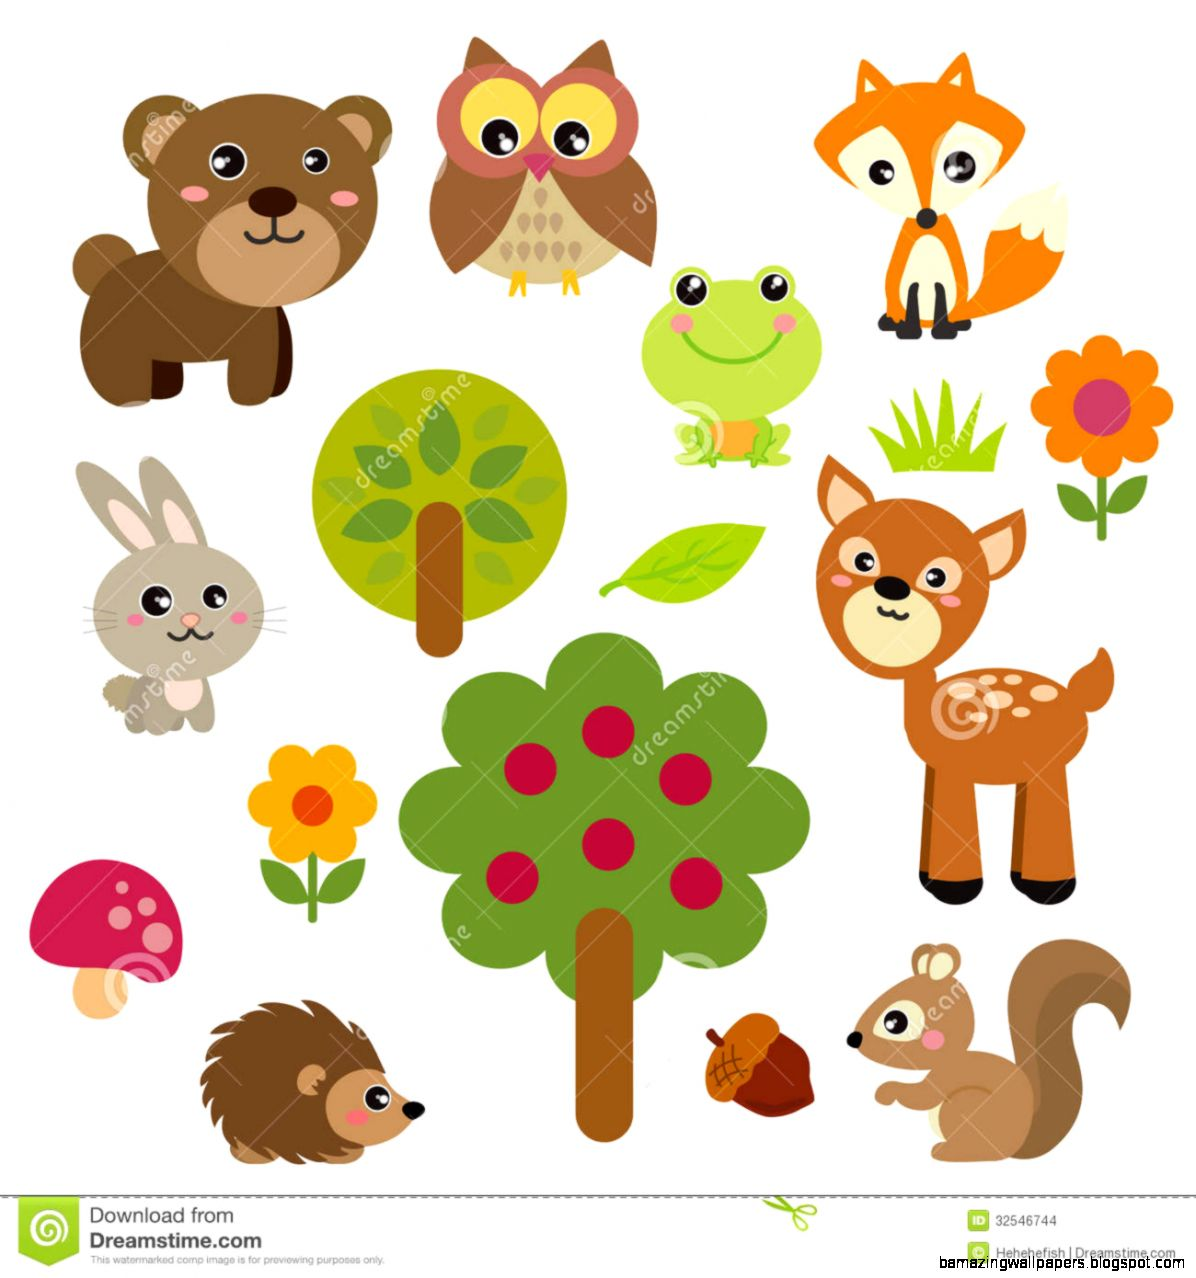 pinterest clipart animals - photo #40